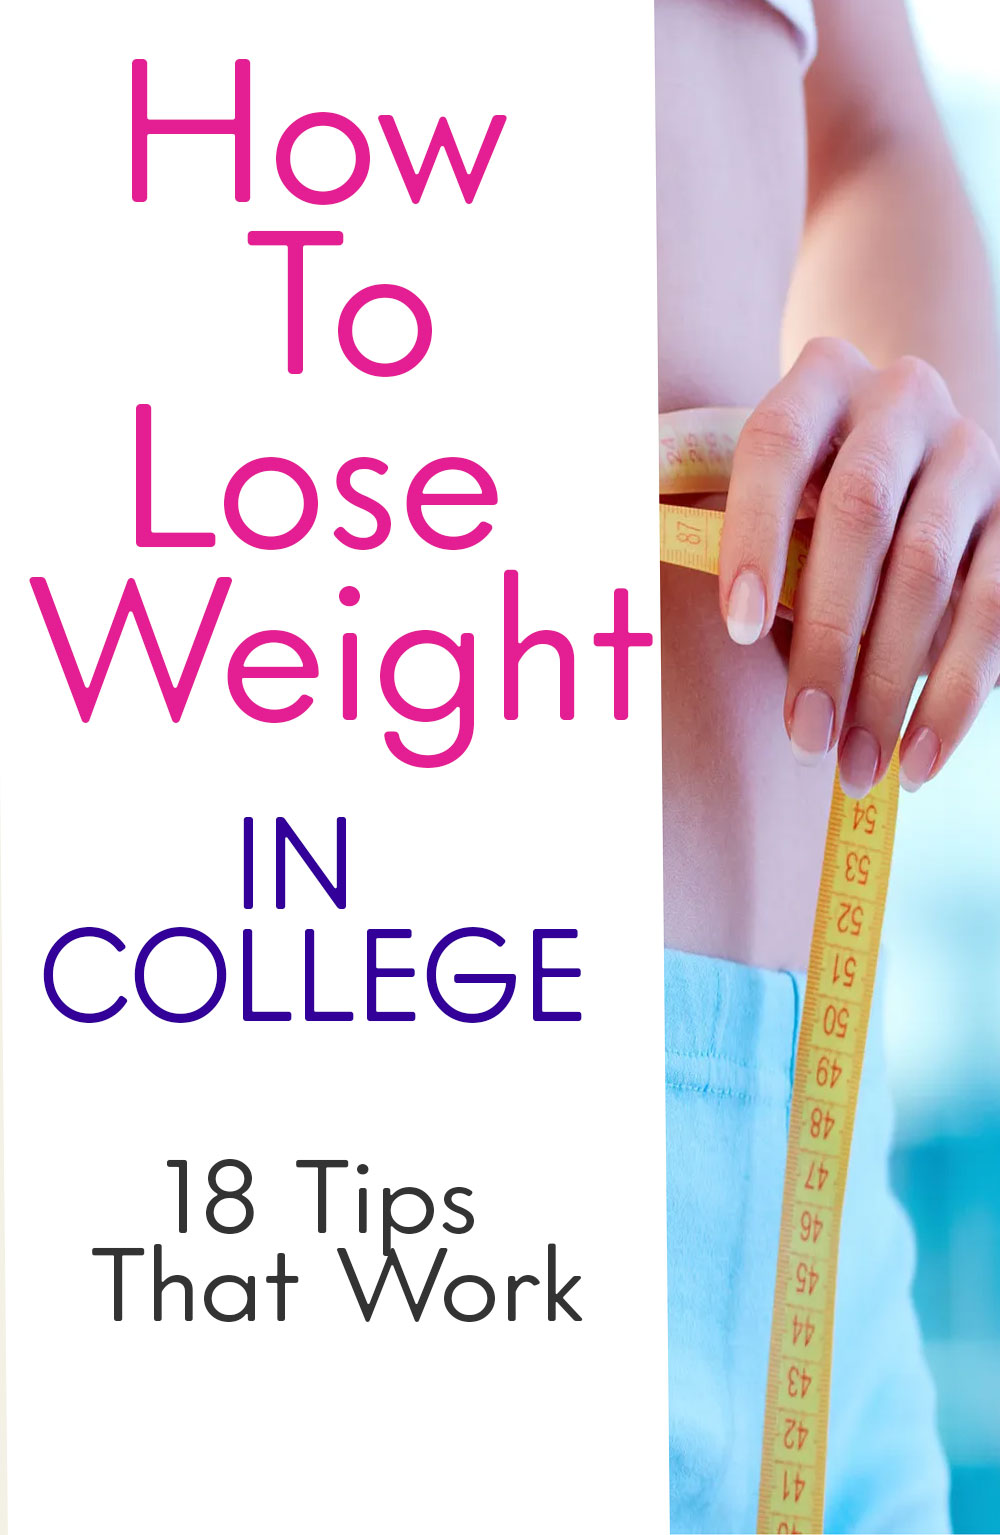 50 Weight Loss Tips for College Students